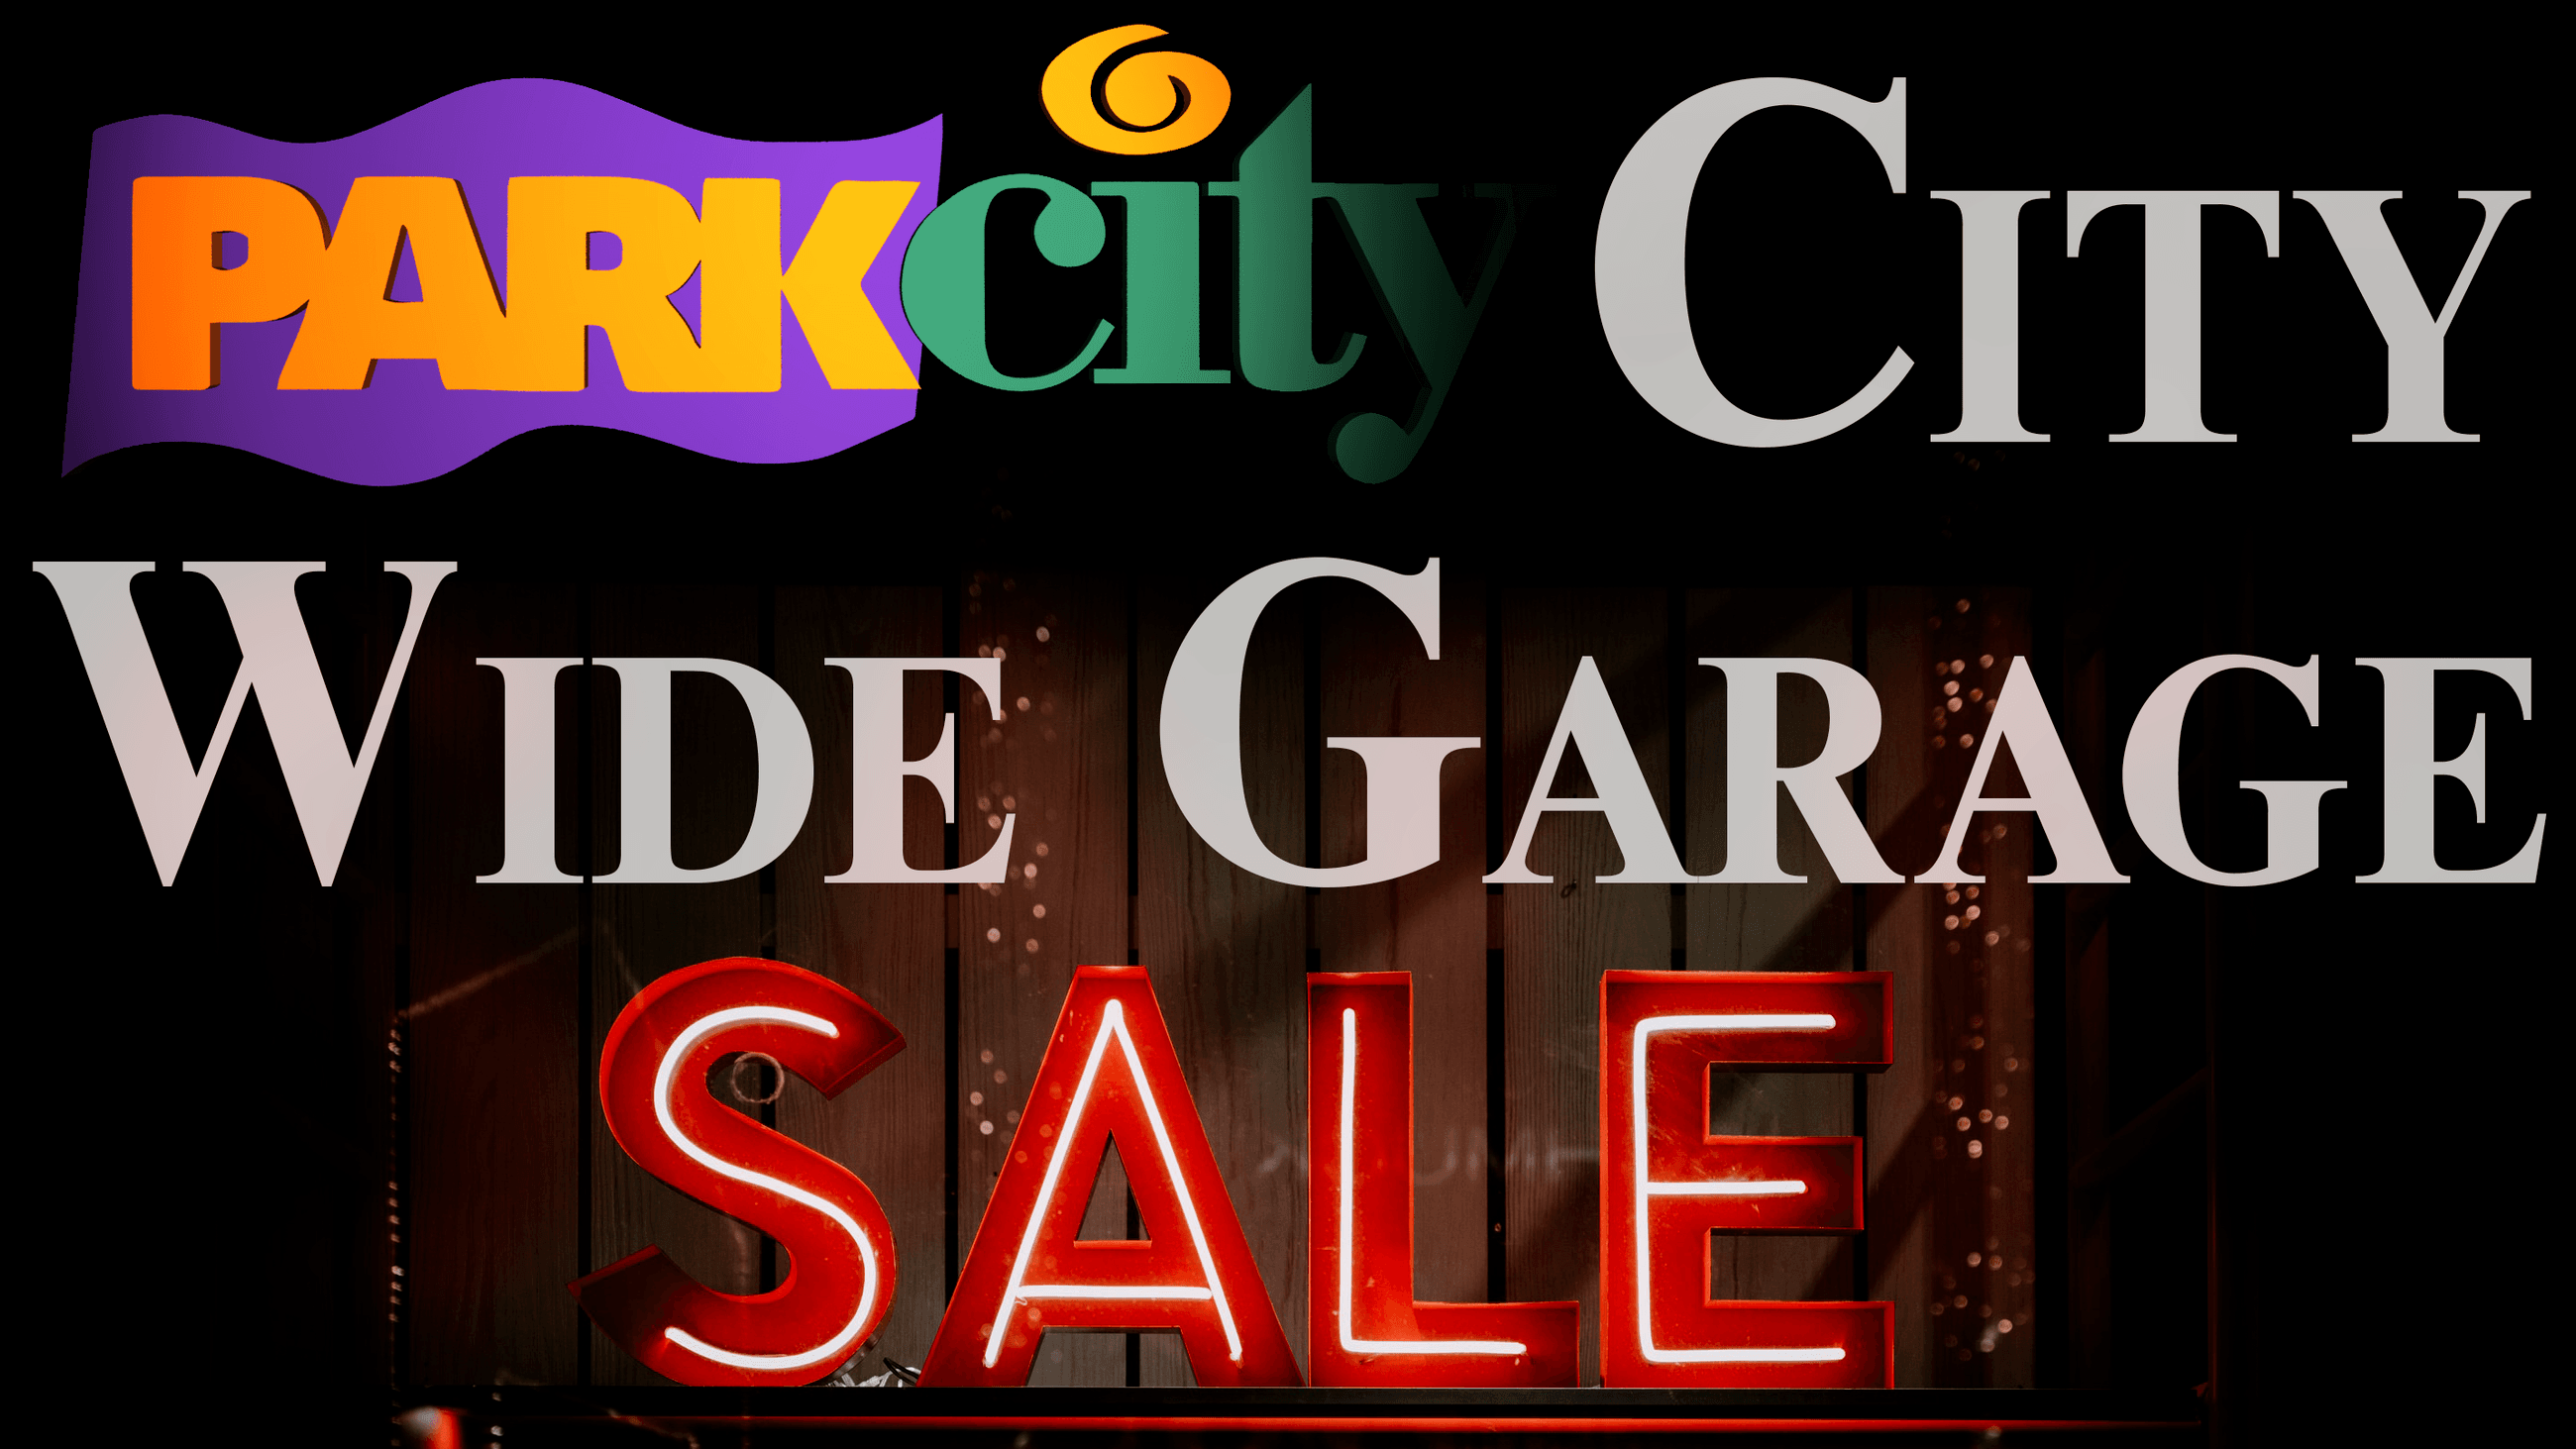 City Wide Garage Sale Header Image